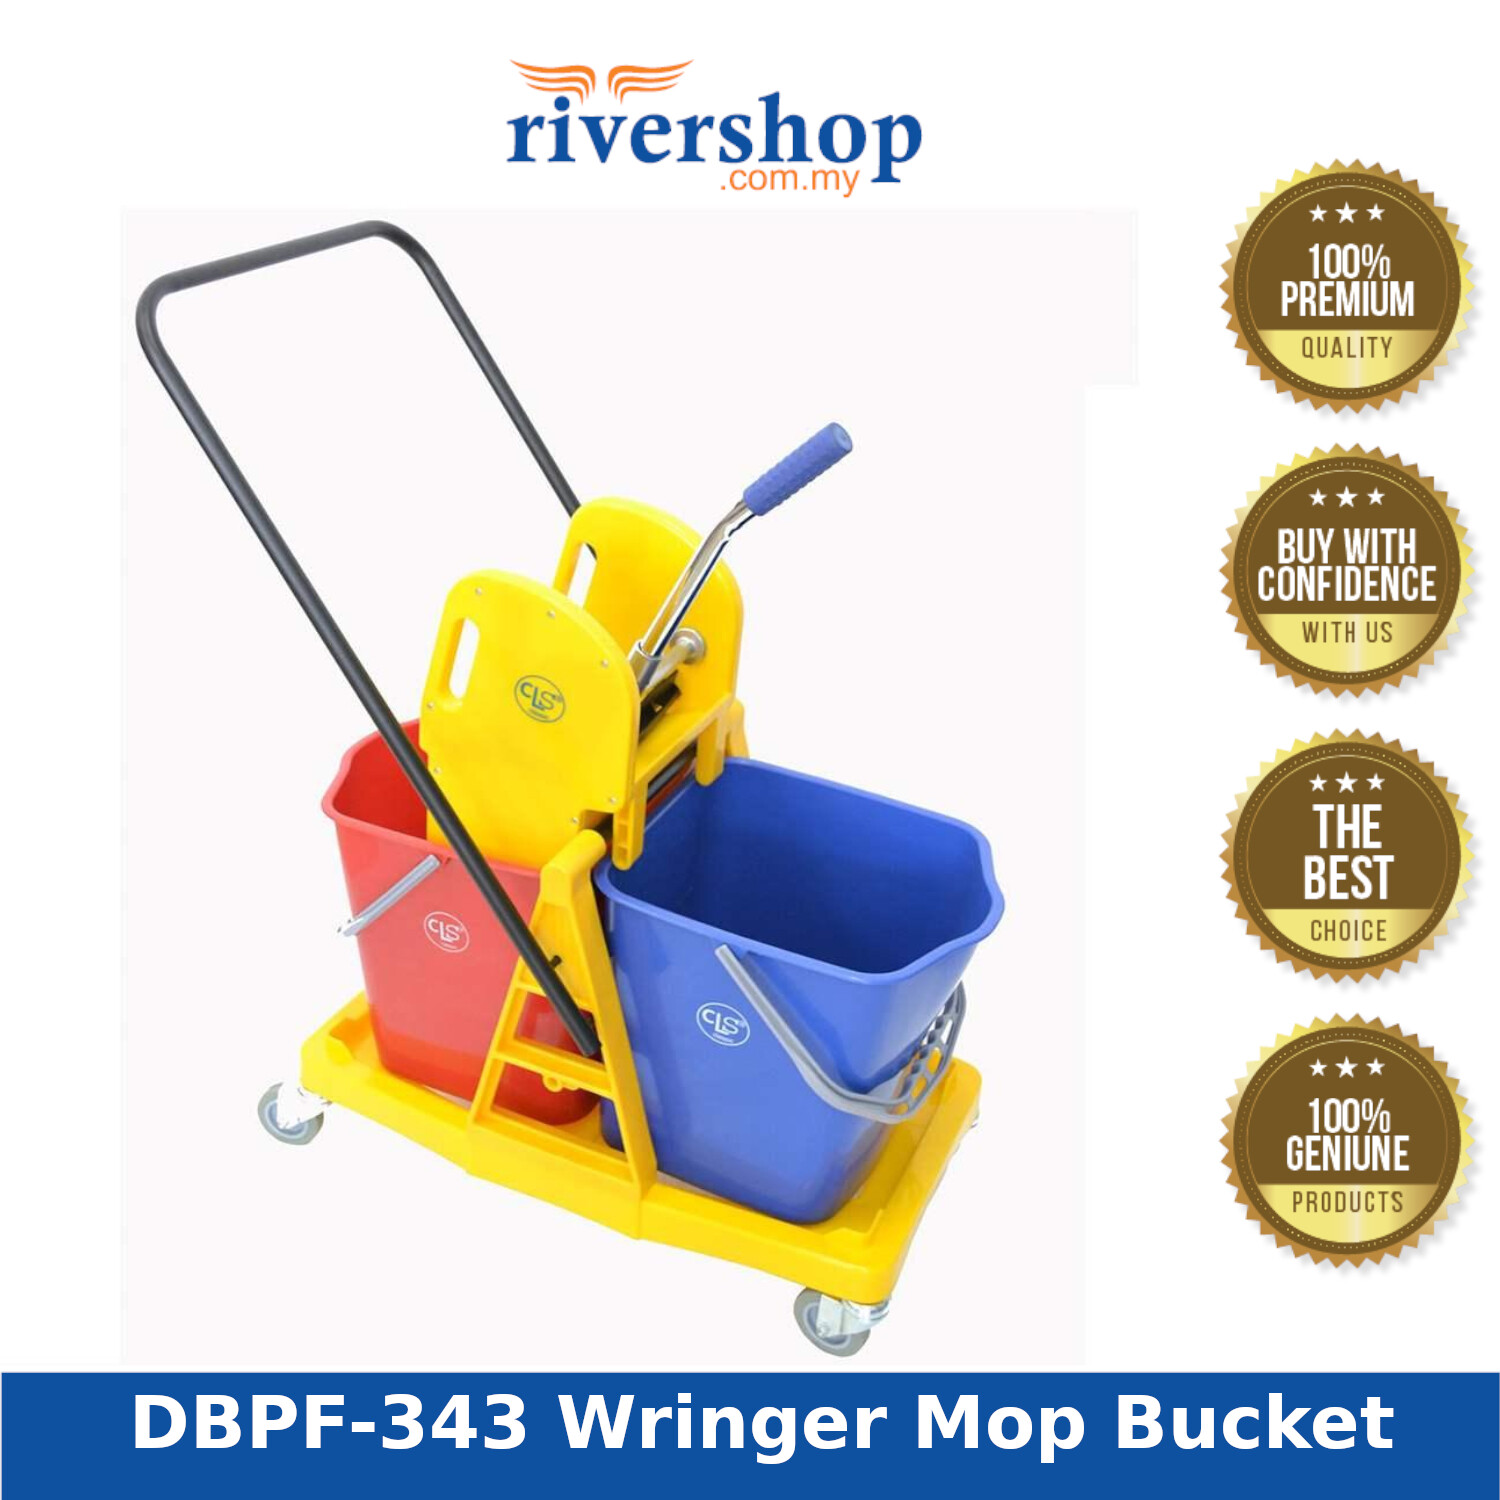 Rivershop Double Wringer Mop Bucket with Plastic Frame (Down Press) DBPF-343